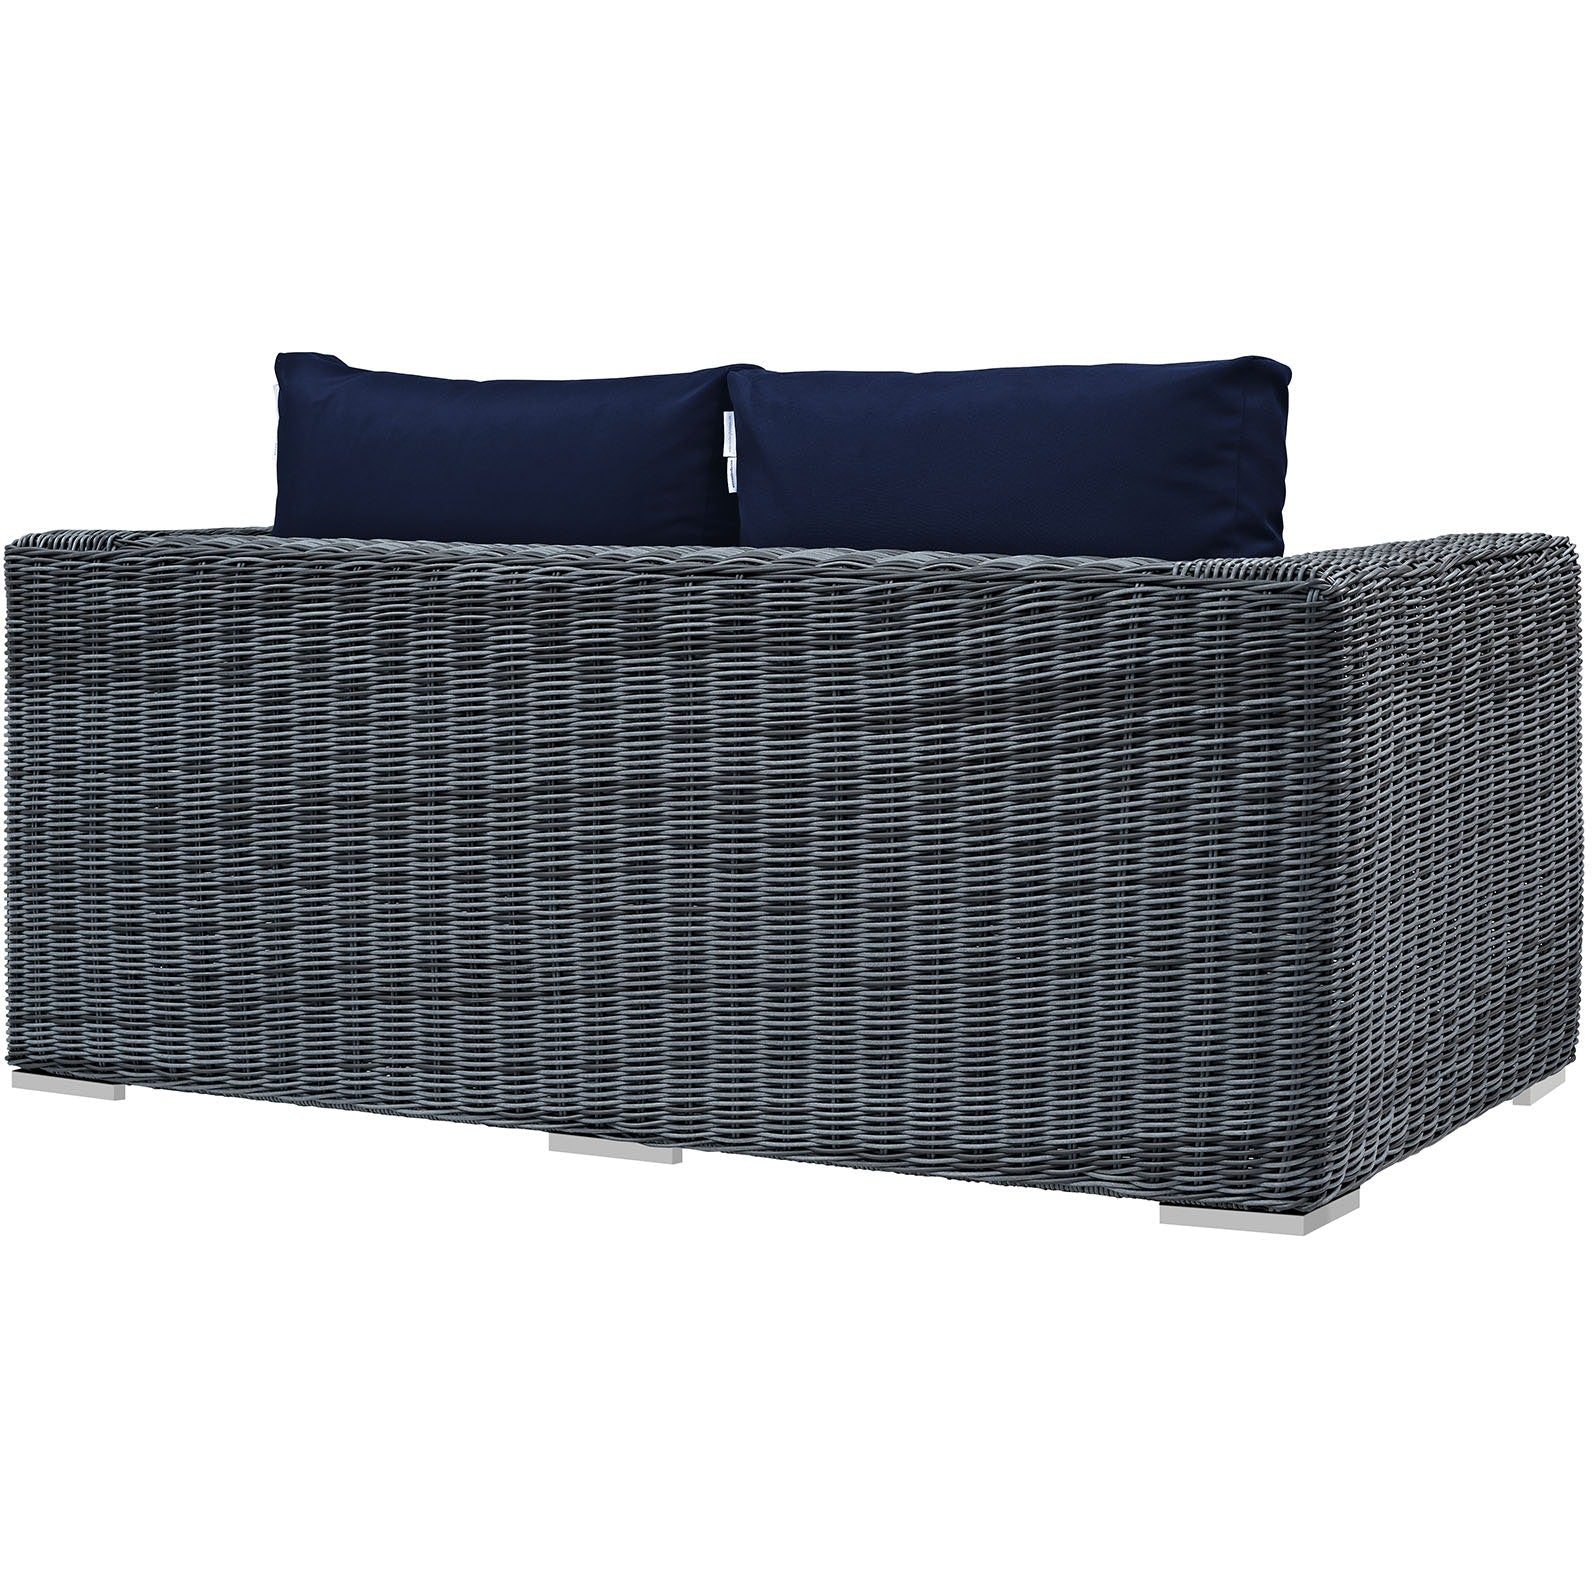 Summon Outdoor Patio Sunbrella® Loveseat - Canvas Navy